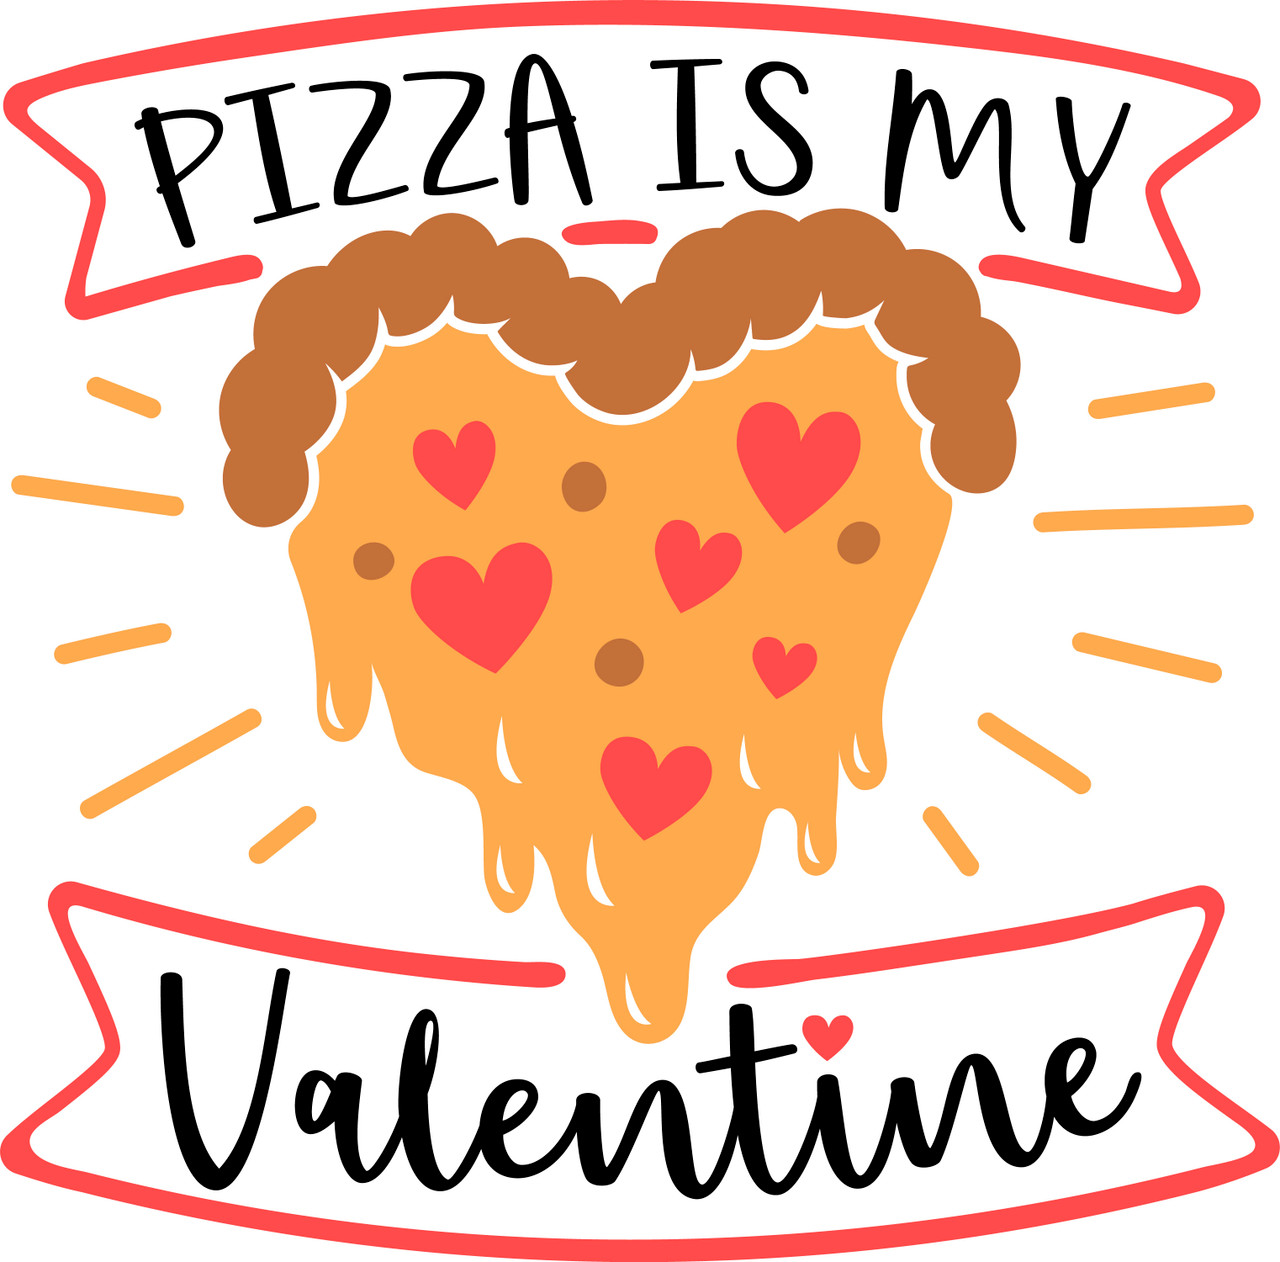 Get Be My Valentine, Svg Cut File Image